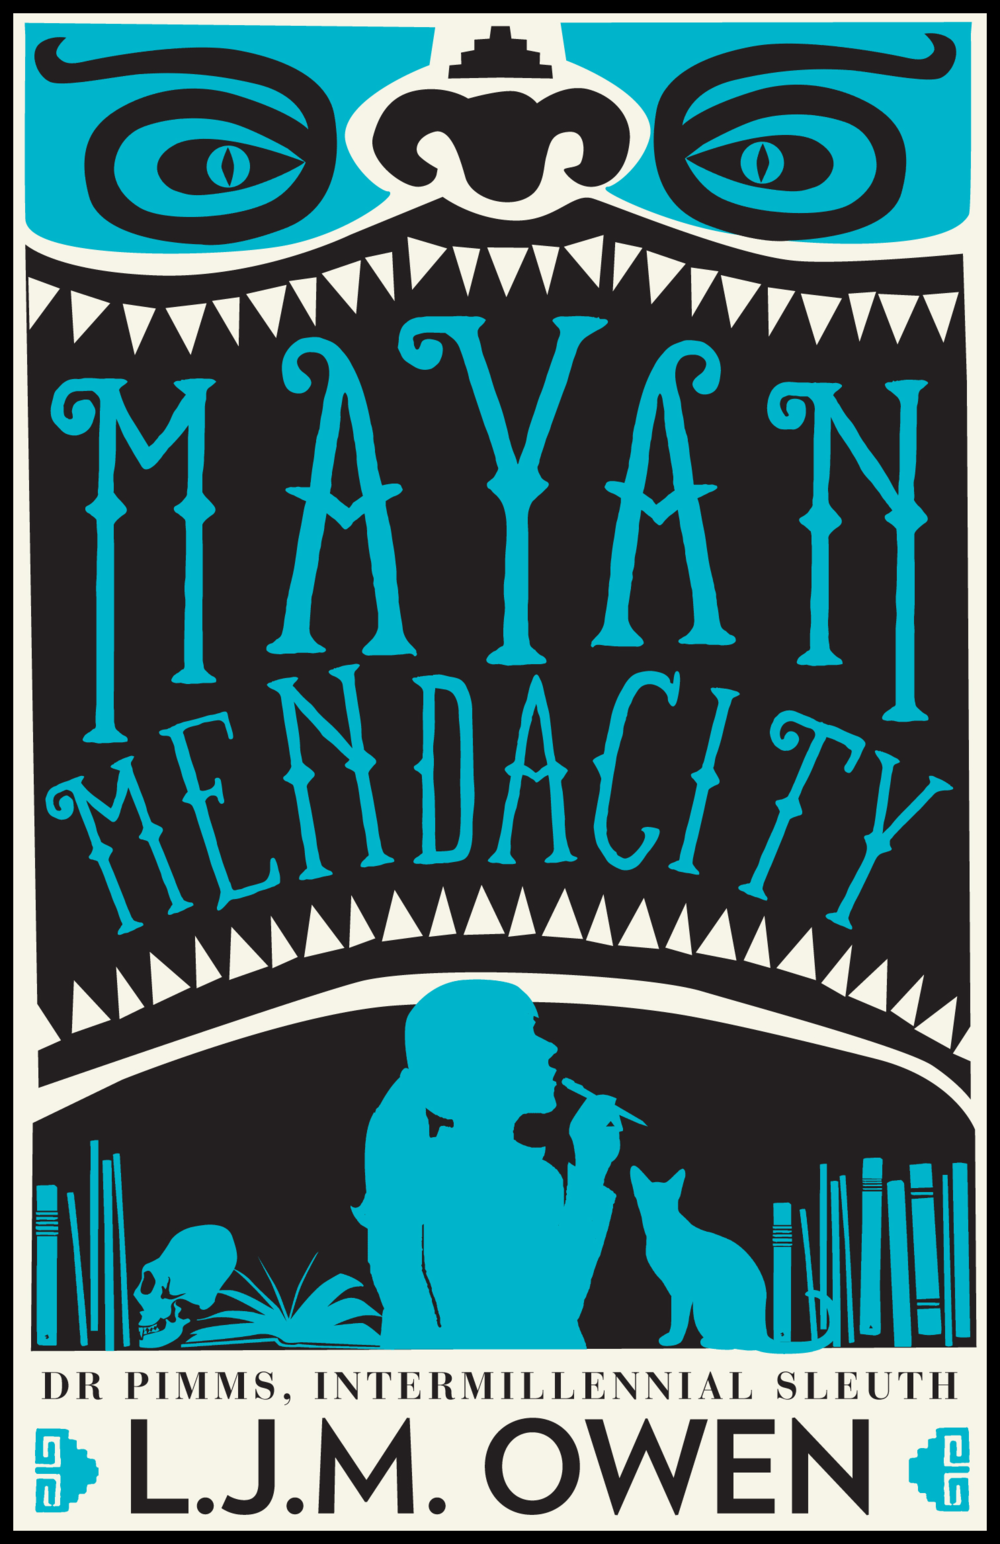 MAYAN MENDACITY , DR PIMMS BOOK TWO